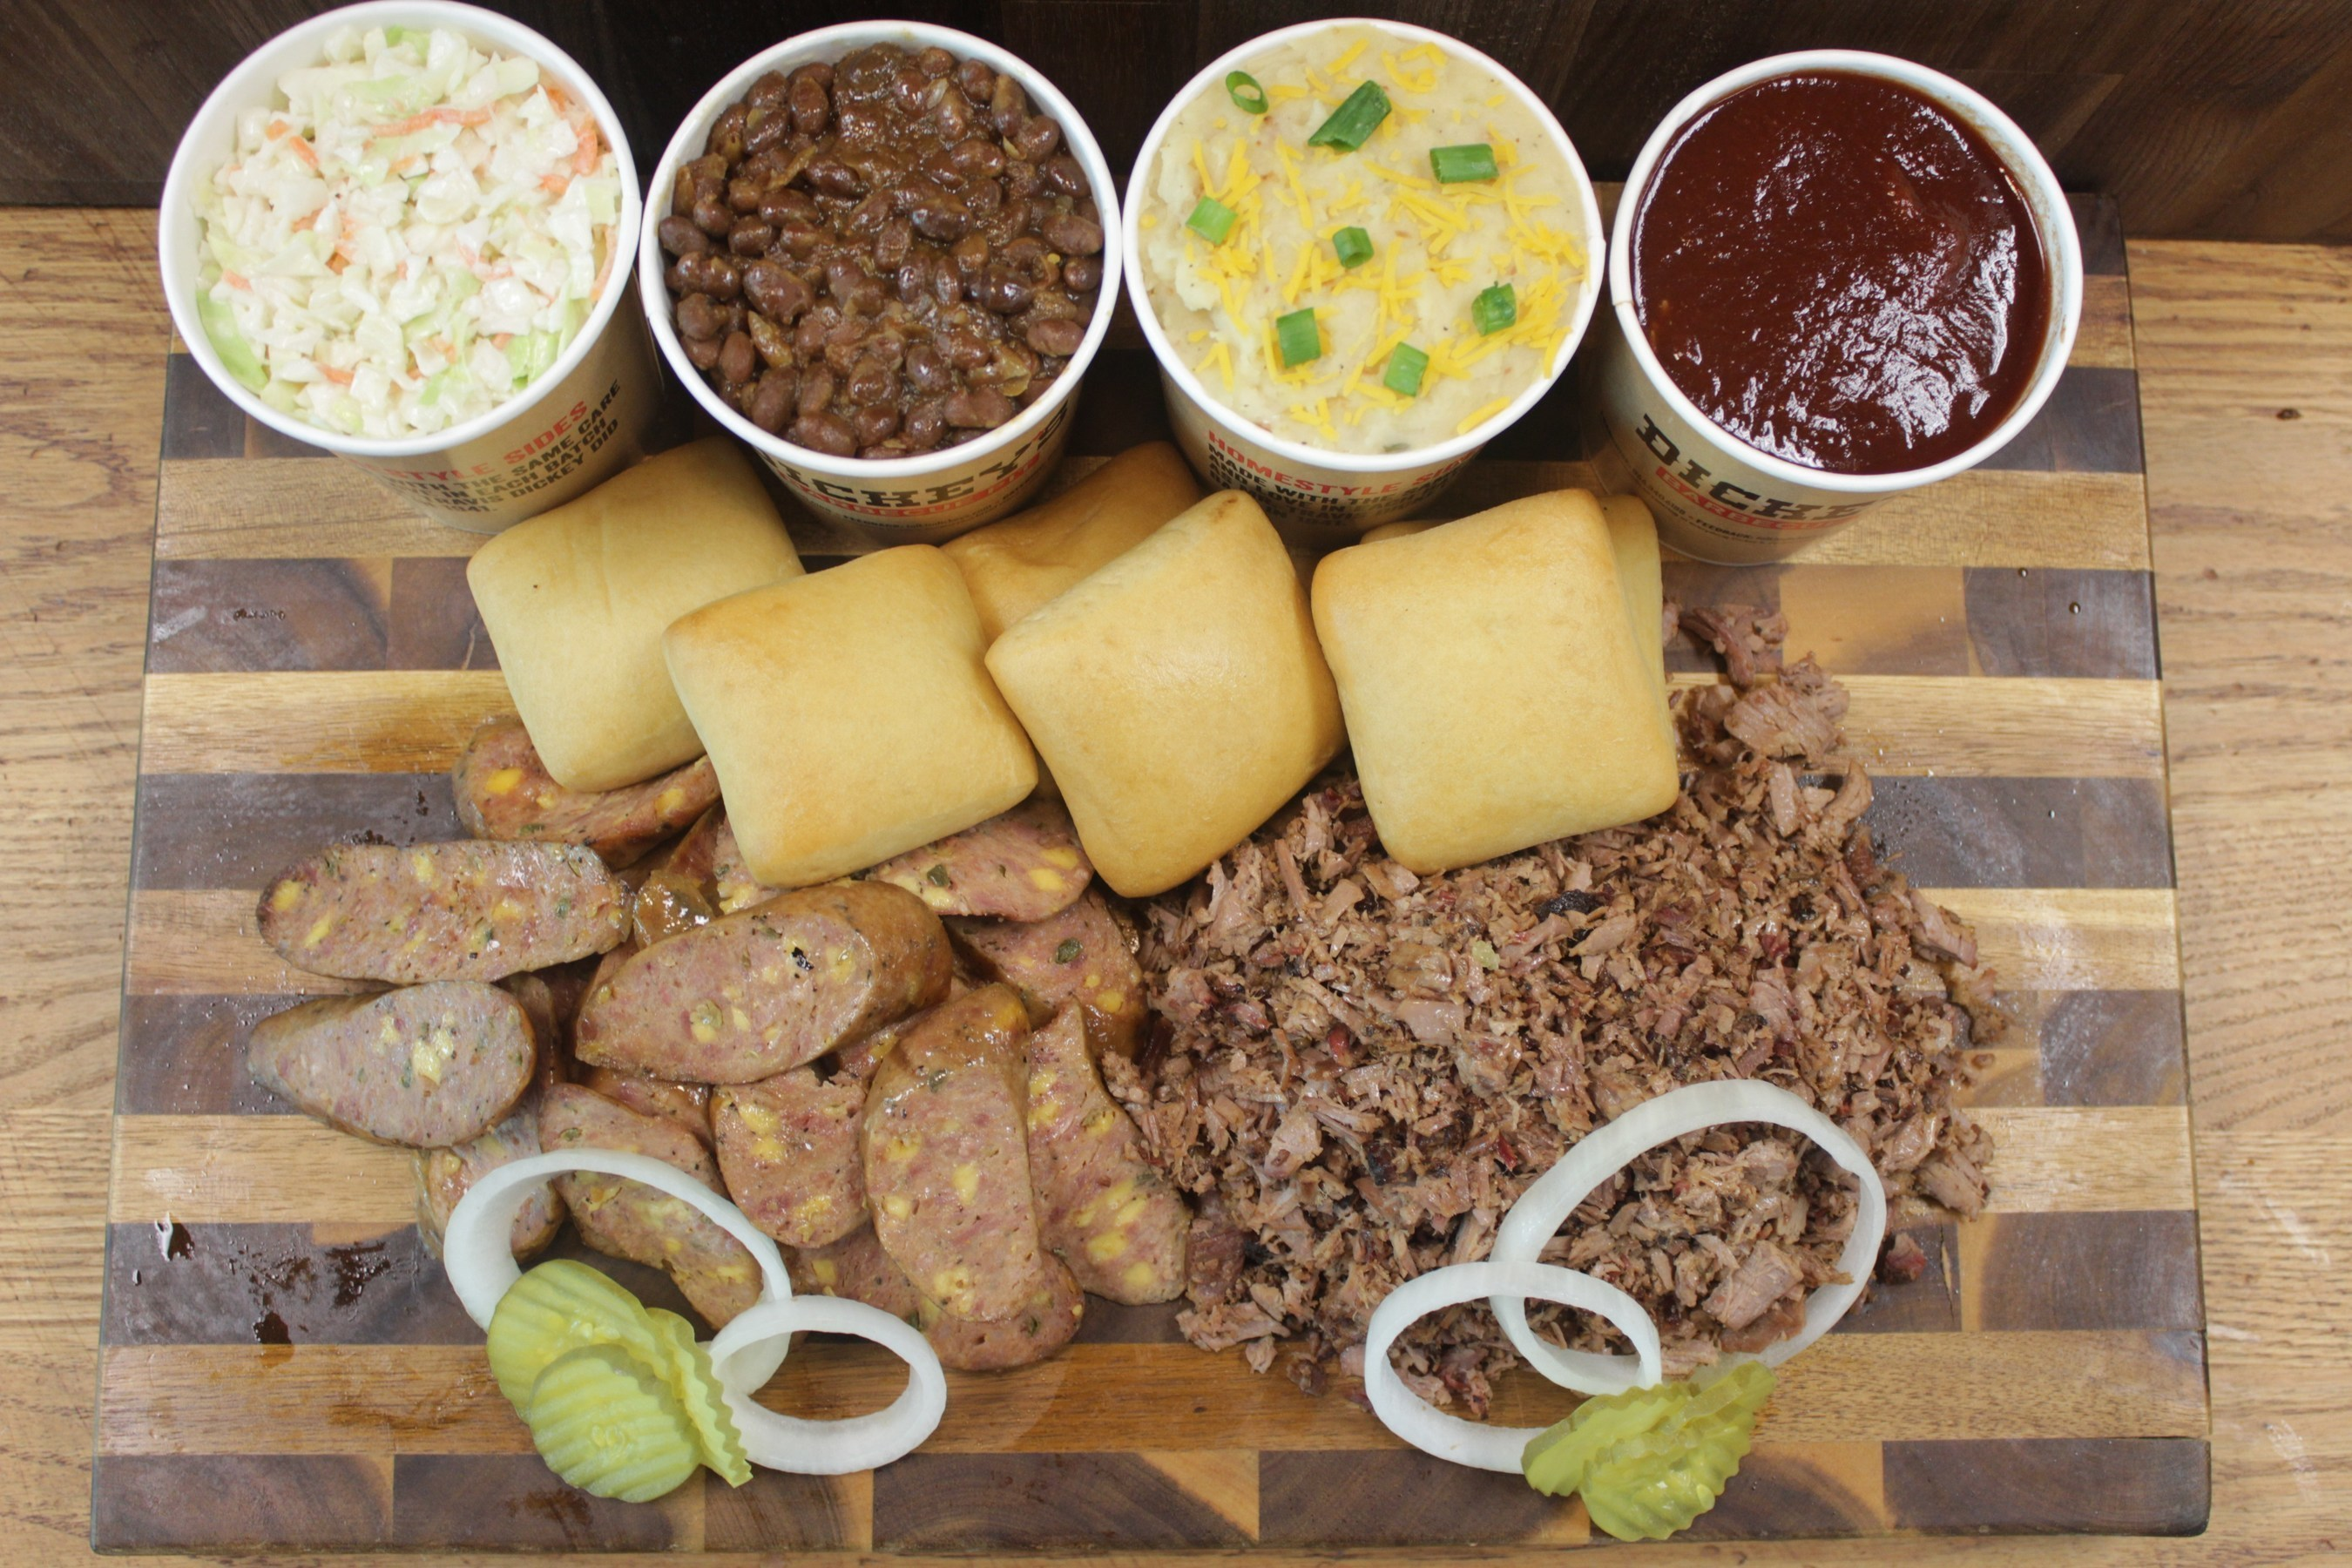 Todd Saperstein will open four Dickey's Barbecue Pit locations in Oregon.